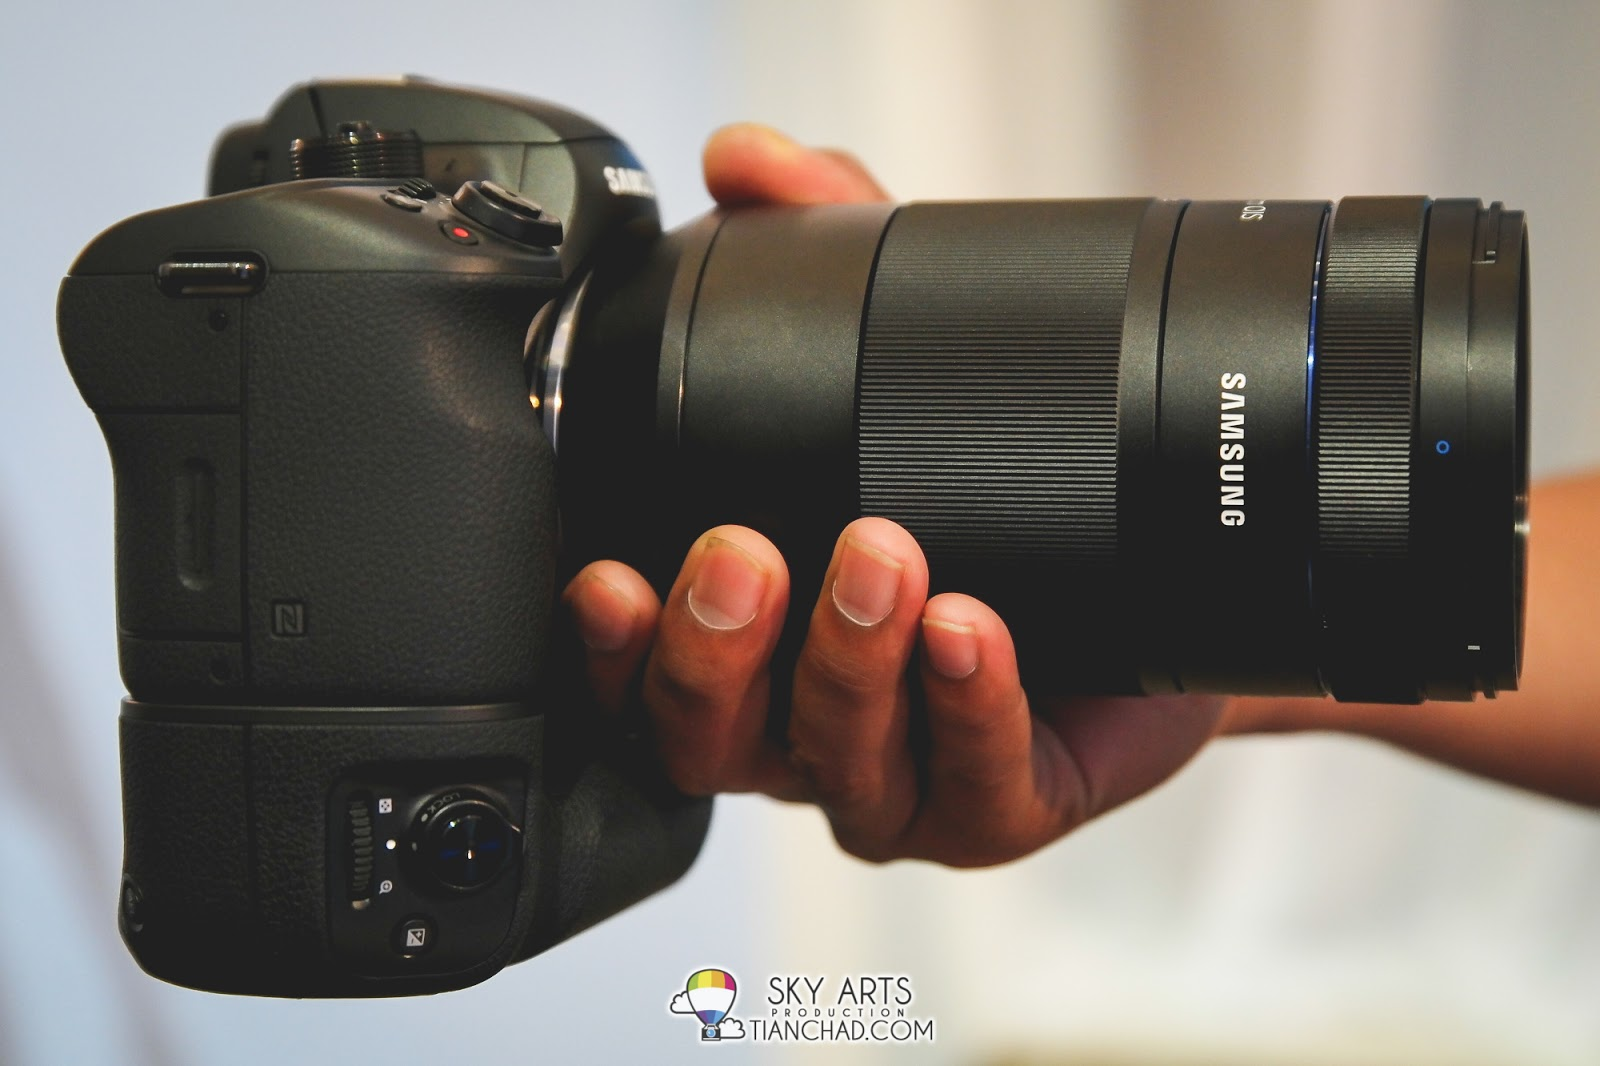 You can carry Samsung NX1 with ease although zoom lens and battery grip were attached on it.